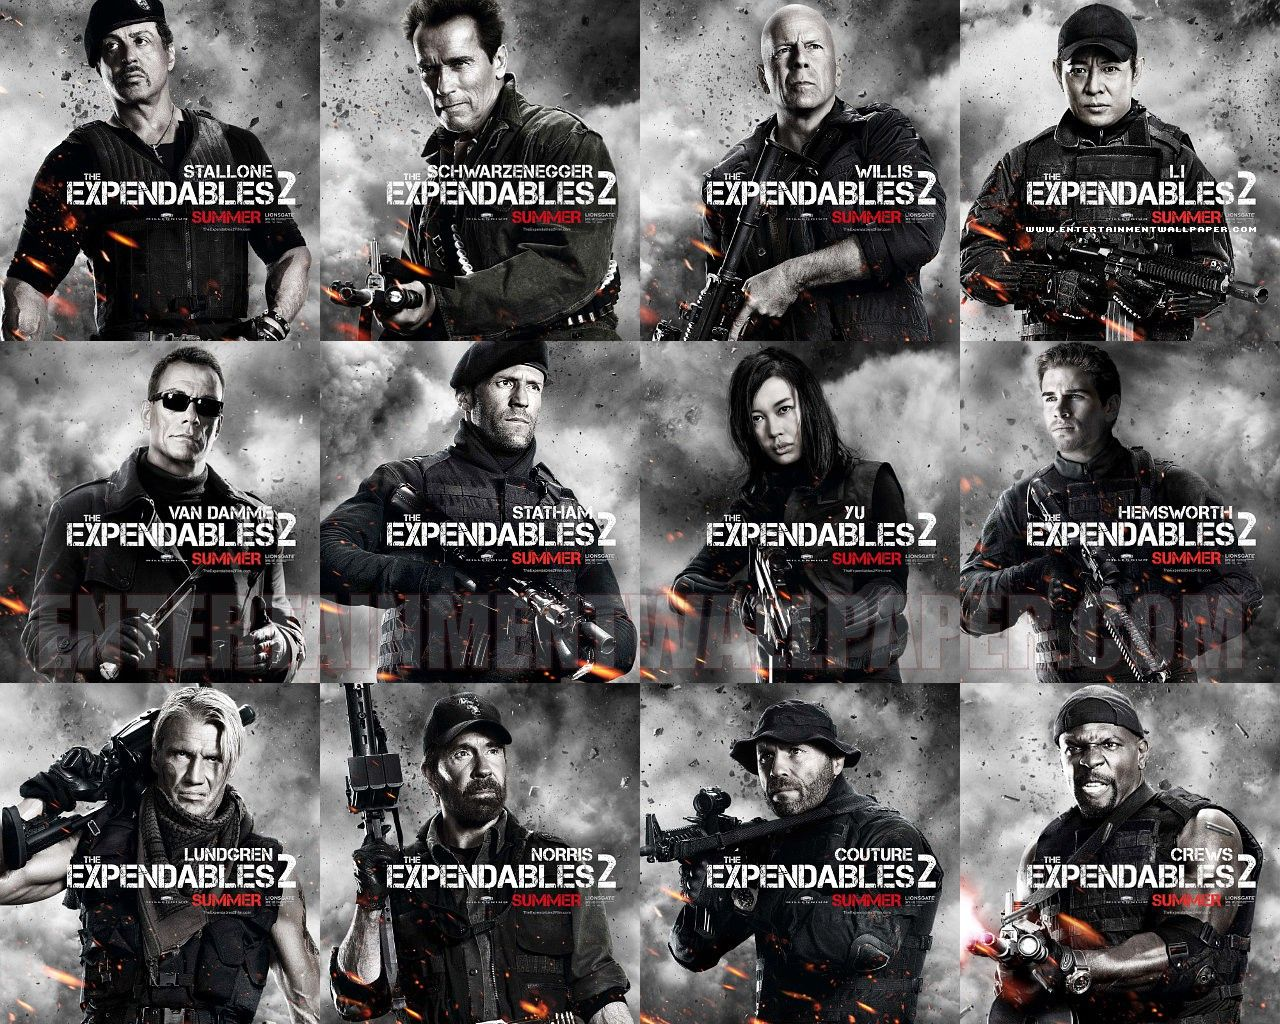 Sylvester Stallone Quotes Expendables